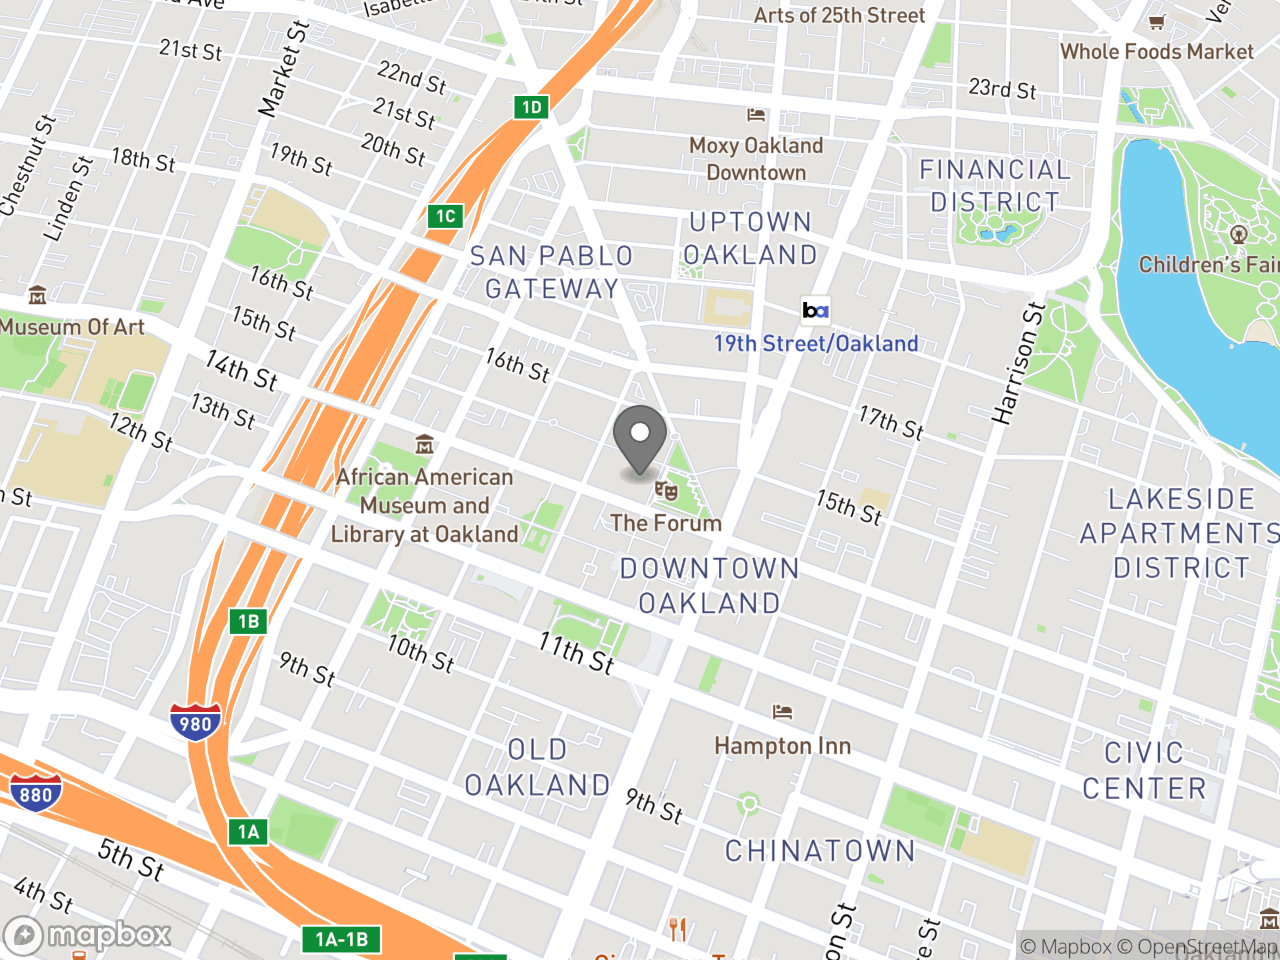 Map image for Bicyclist and Pedestrian Advisory Commission (BPAC) SPECIAL Meeting, May 6, 2015, located at 1 Frank H Ogawa Plaza in Oakland, CA 94612